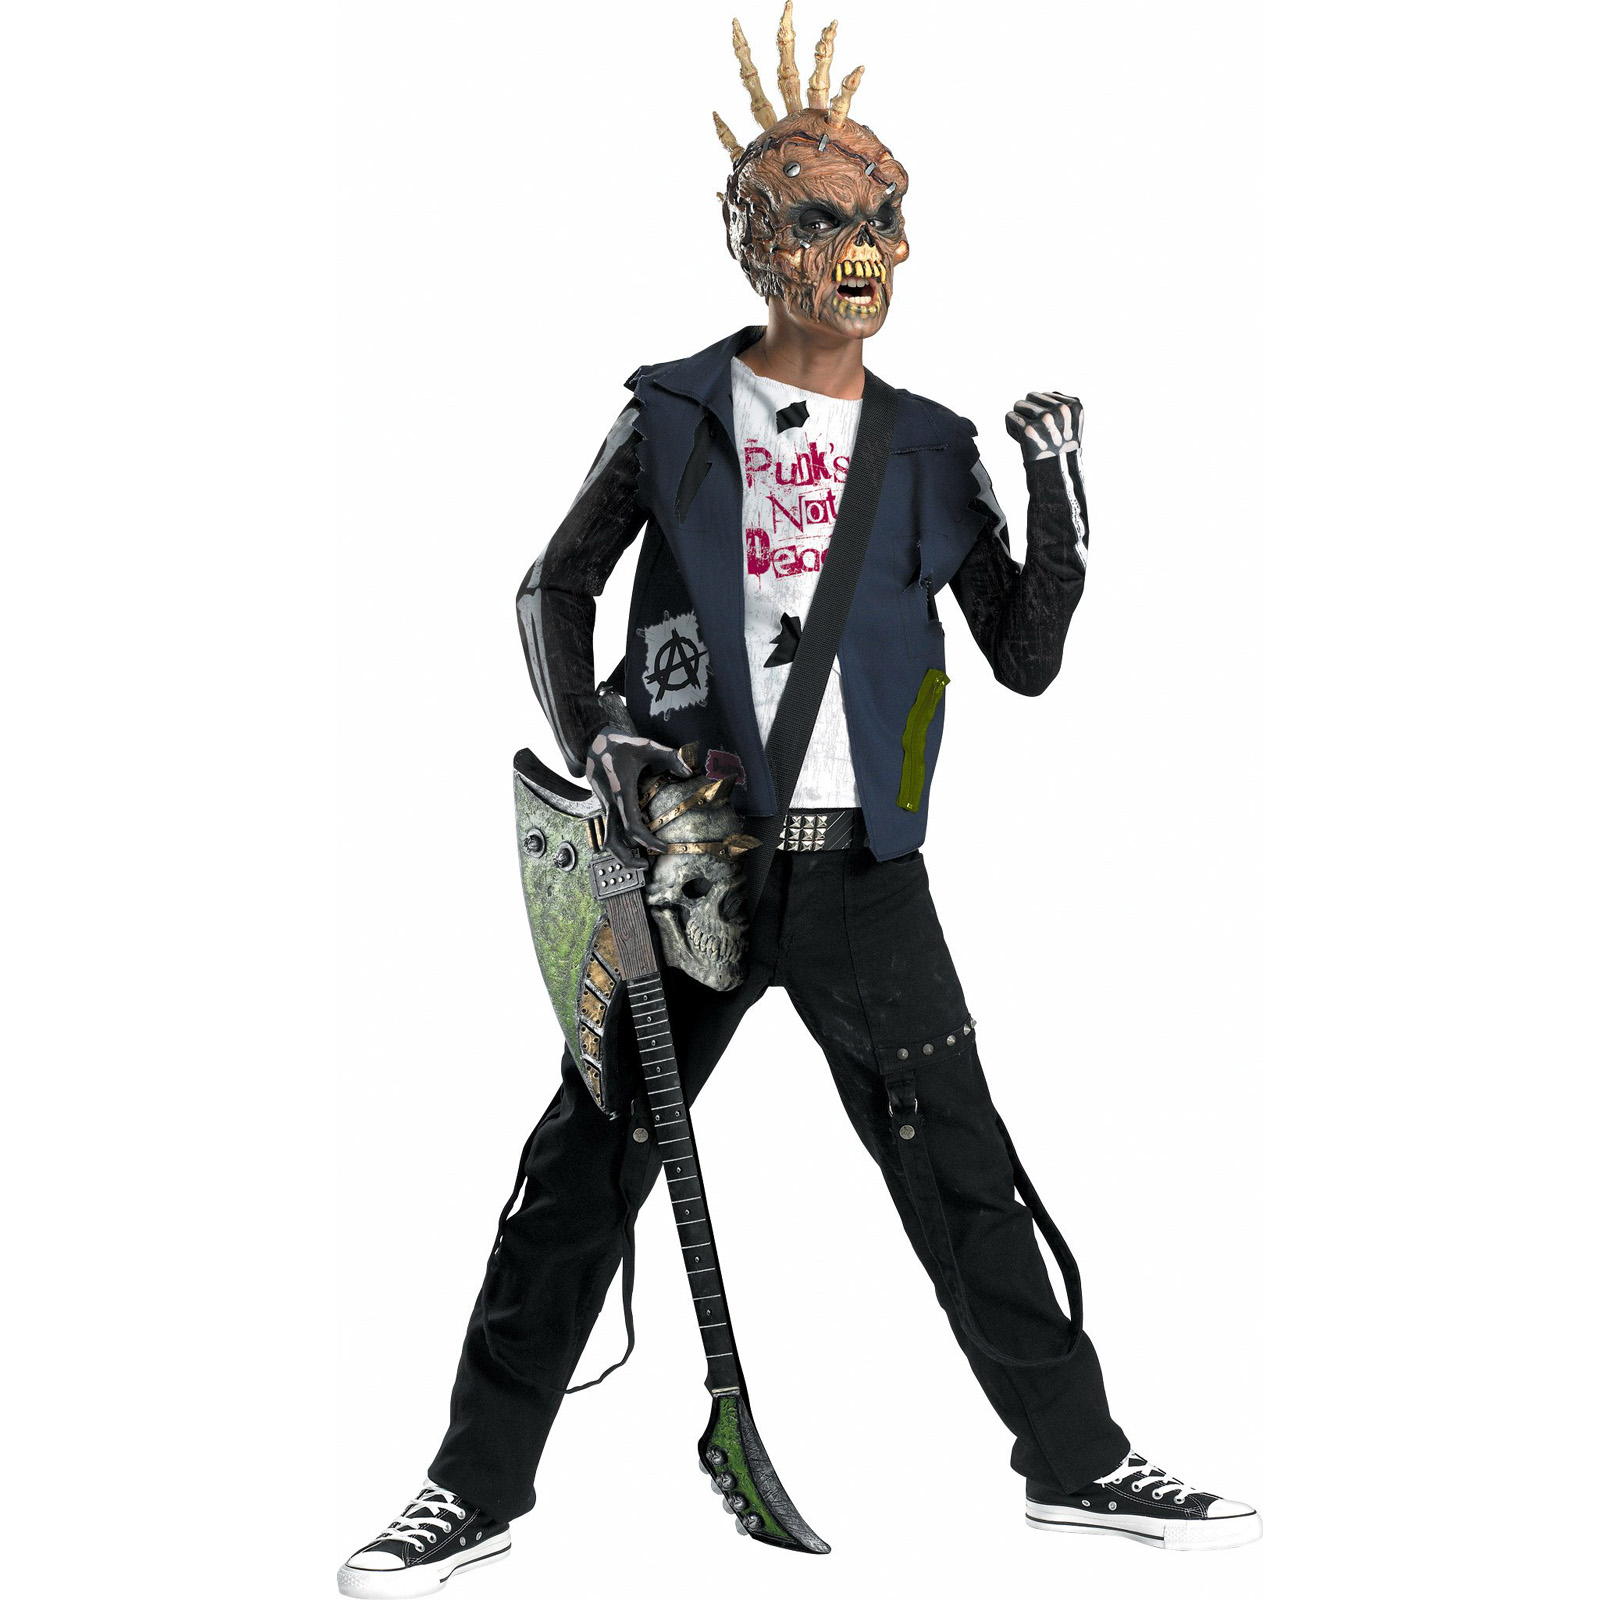 Disguise Costumes Punk Creep Costume (Boy - Child Large 10-12) at Sears.com